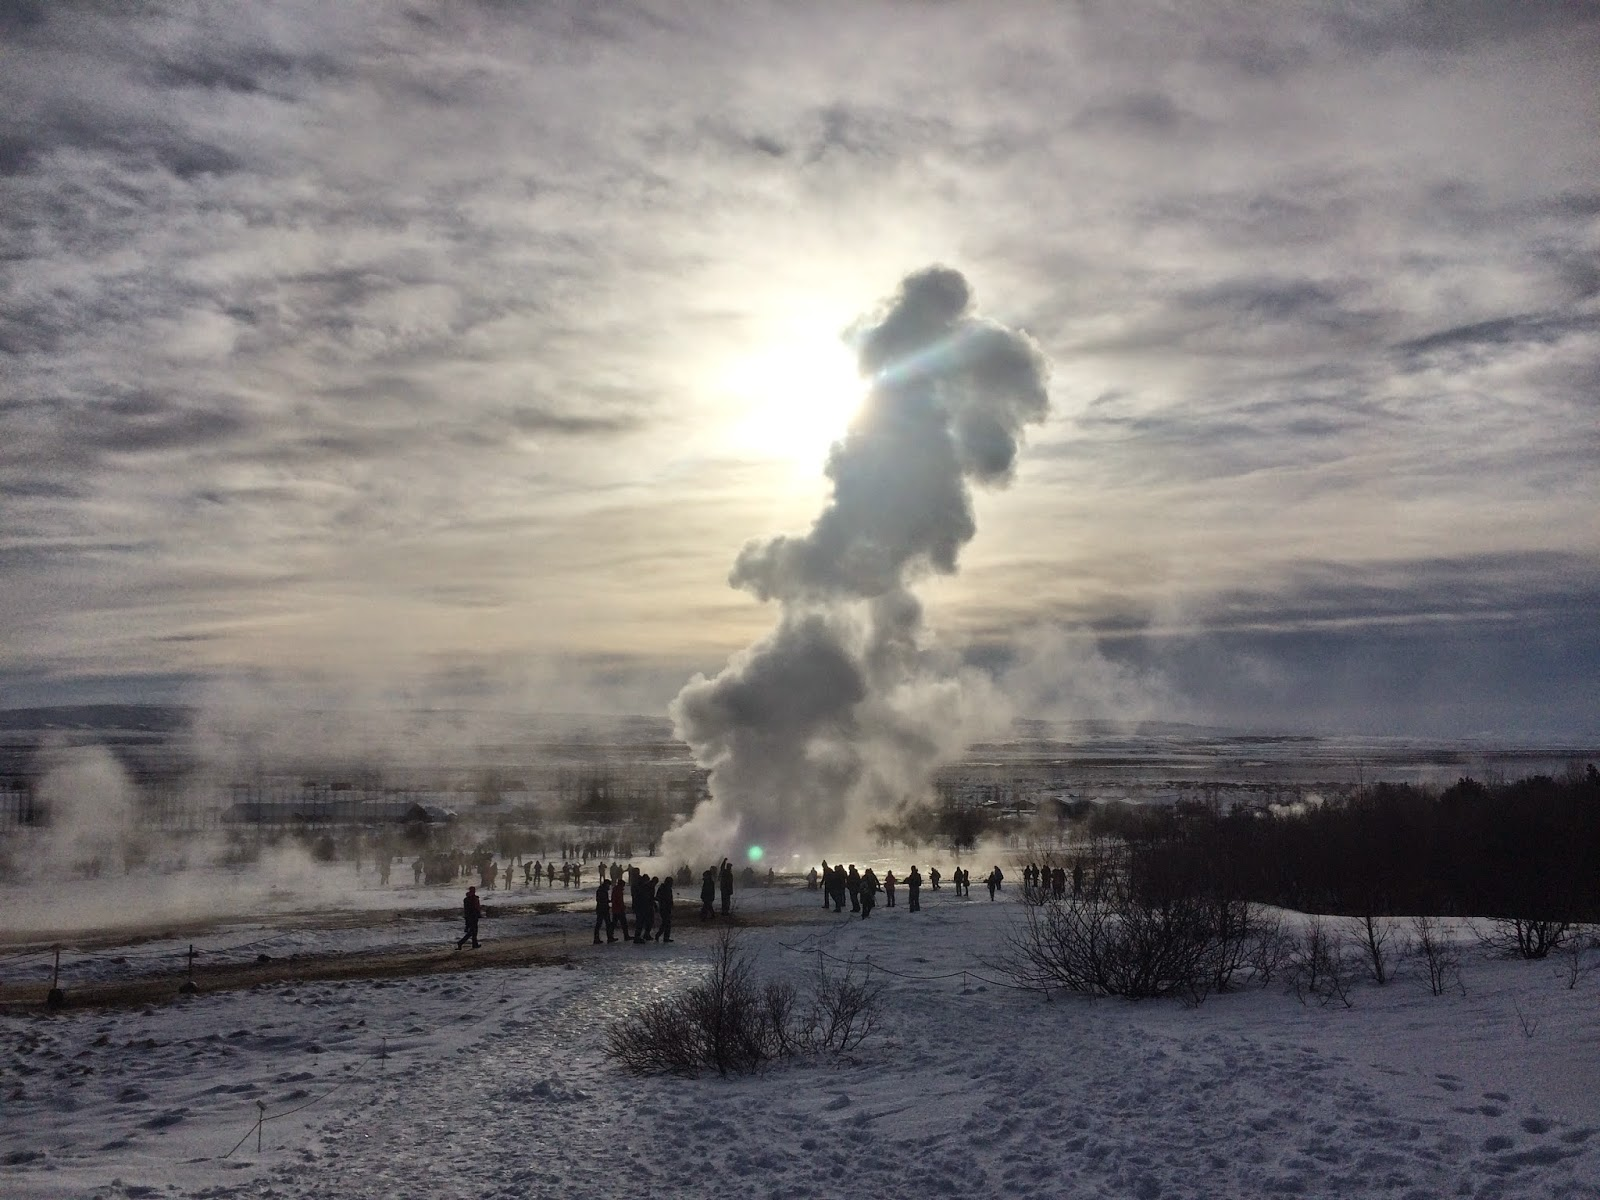 Iceland's Golden Circle Tour - geyser